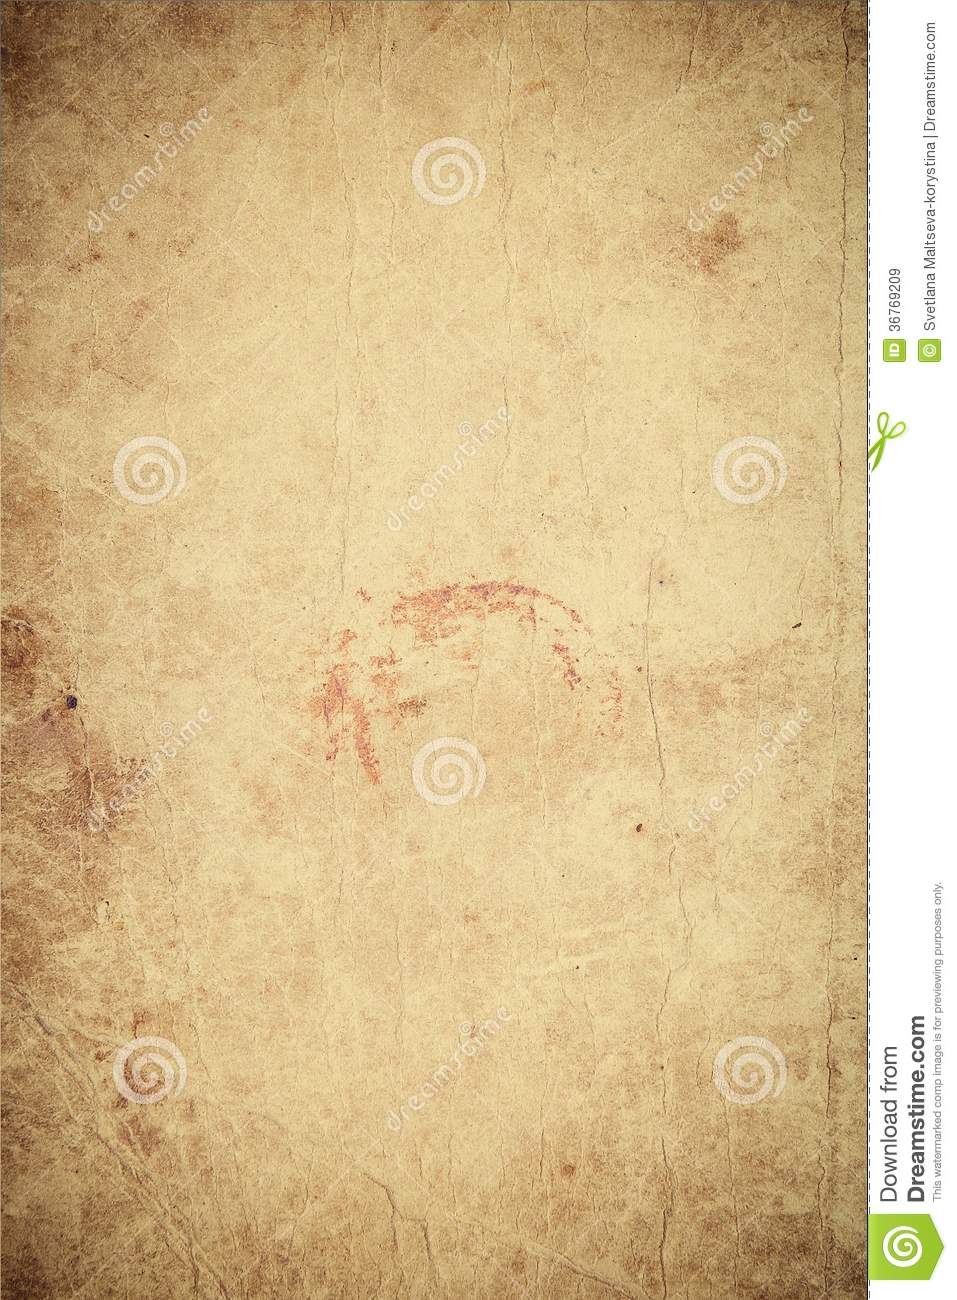 Old Book Cover Background : Texture background old book cover royalty free stock